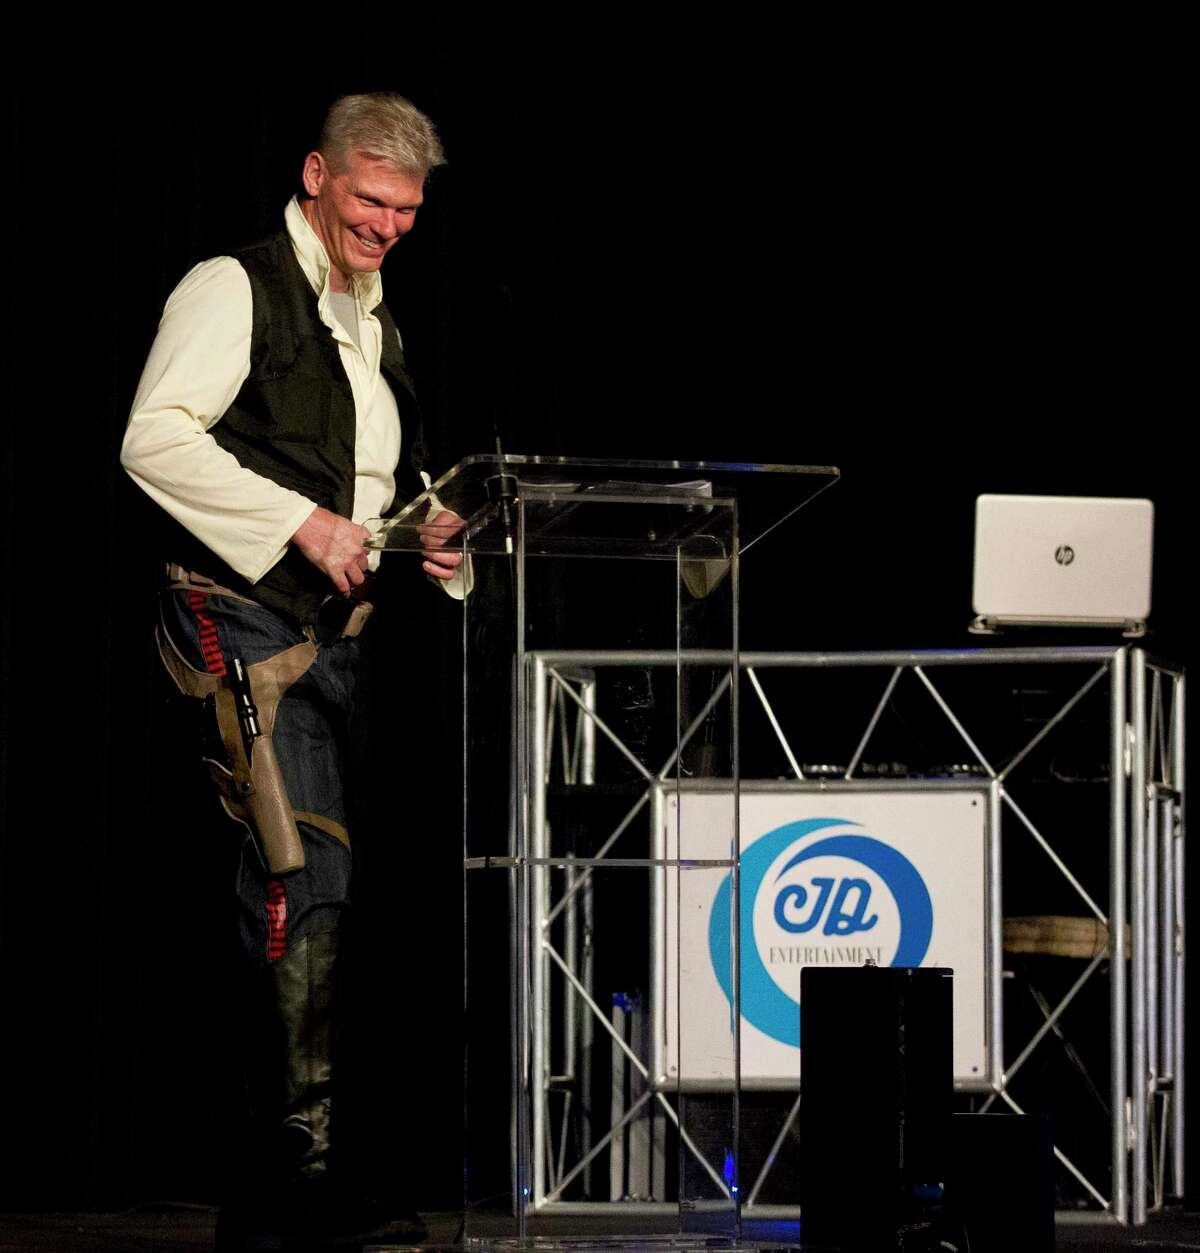 The Woodlands Area Chamber of Commerce is hosting their 41st annual Chairman's Ball beginning at 6 p.m. Aug. 17. Here, J.J. Hollie, president of The Woodlands Area Chamber of Commerce, takes the stage dressed as Han Solo during the annual The Woodlands Area Chamber of Commerce Chairman's Ball at The Woodlands Marriott Hotel & Convention Center on Saturday, Aug. 18, 2018, in The Woodlands.